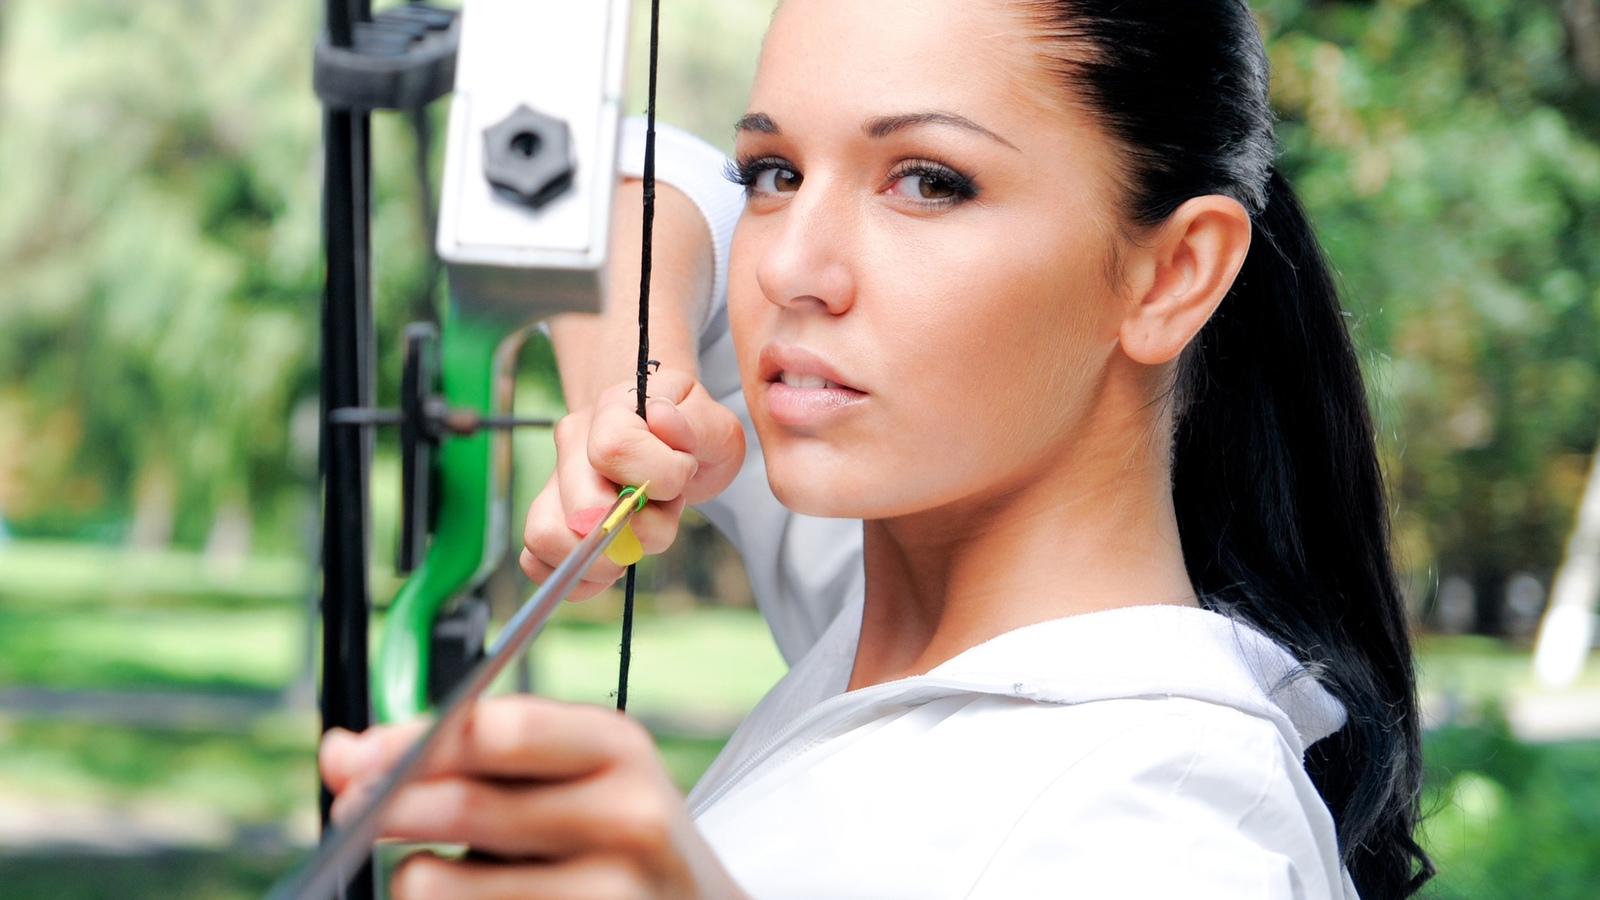 bow, archery, green, look, white, women, arrow